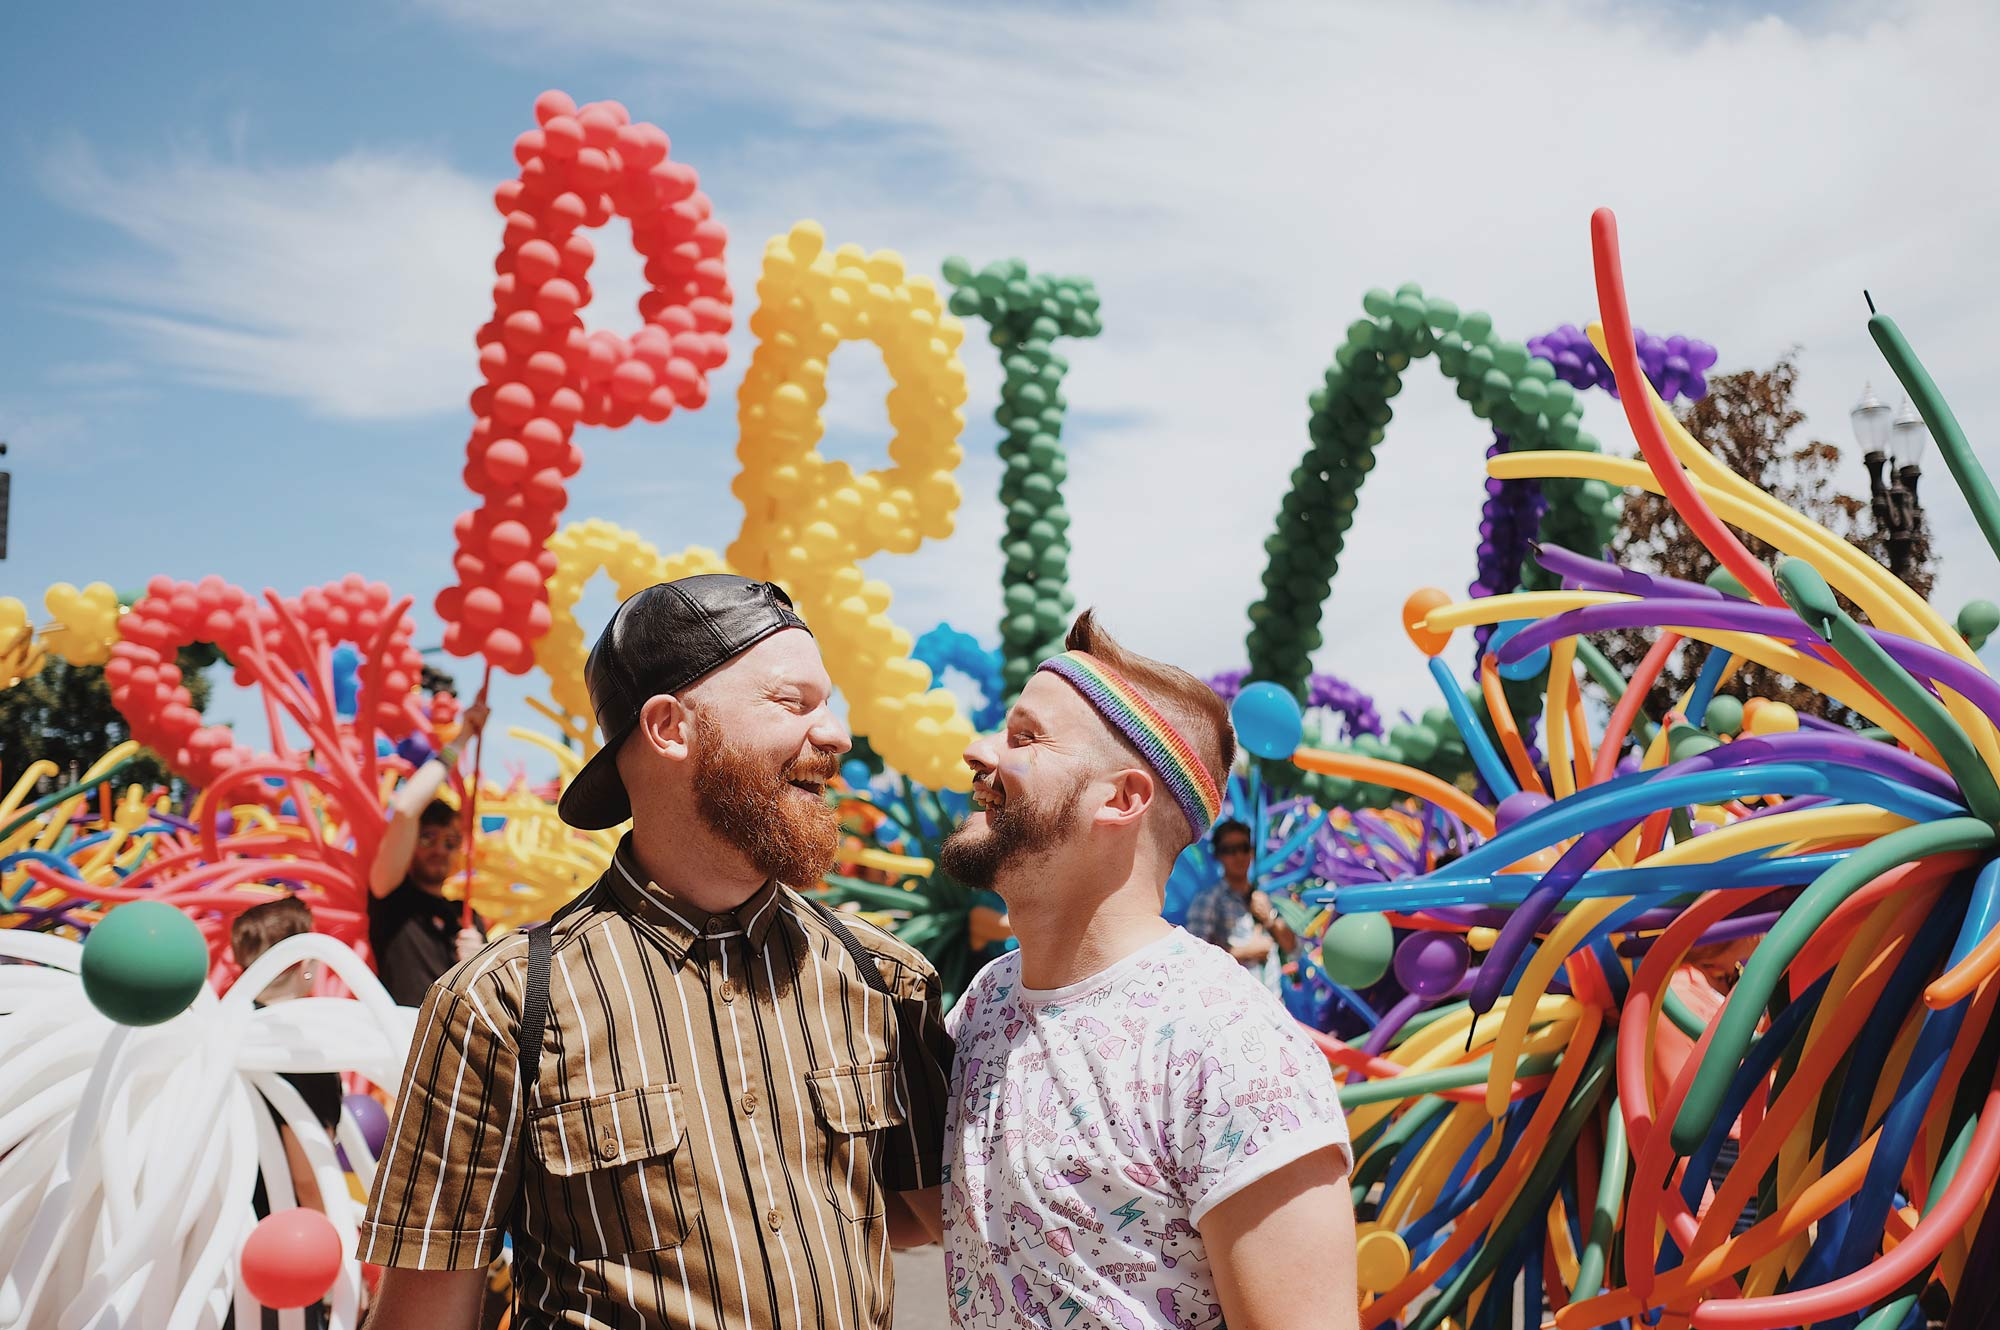 Portland Pride 2019: Best of the LGBTQ+ Rainbow Celebration in Oregon